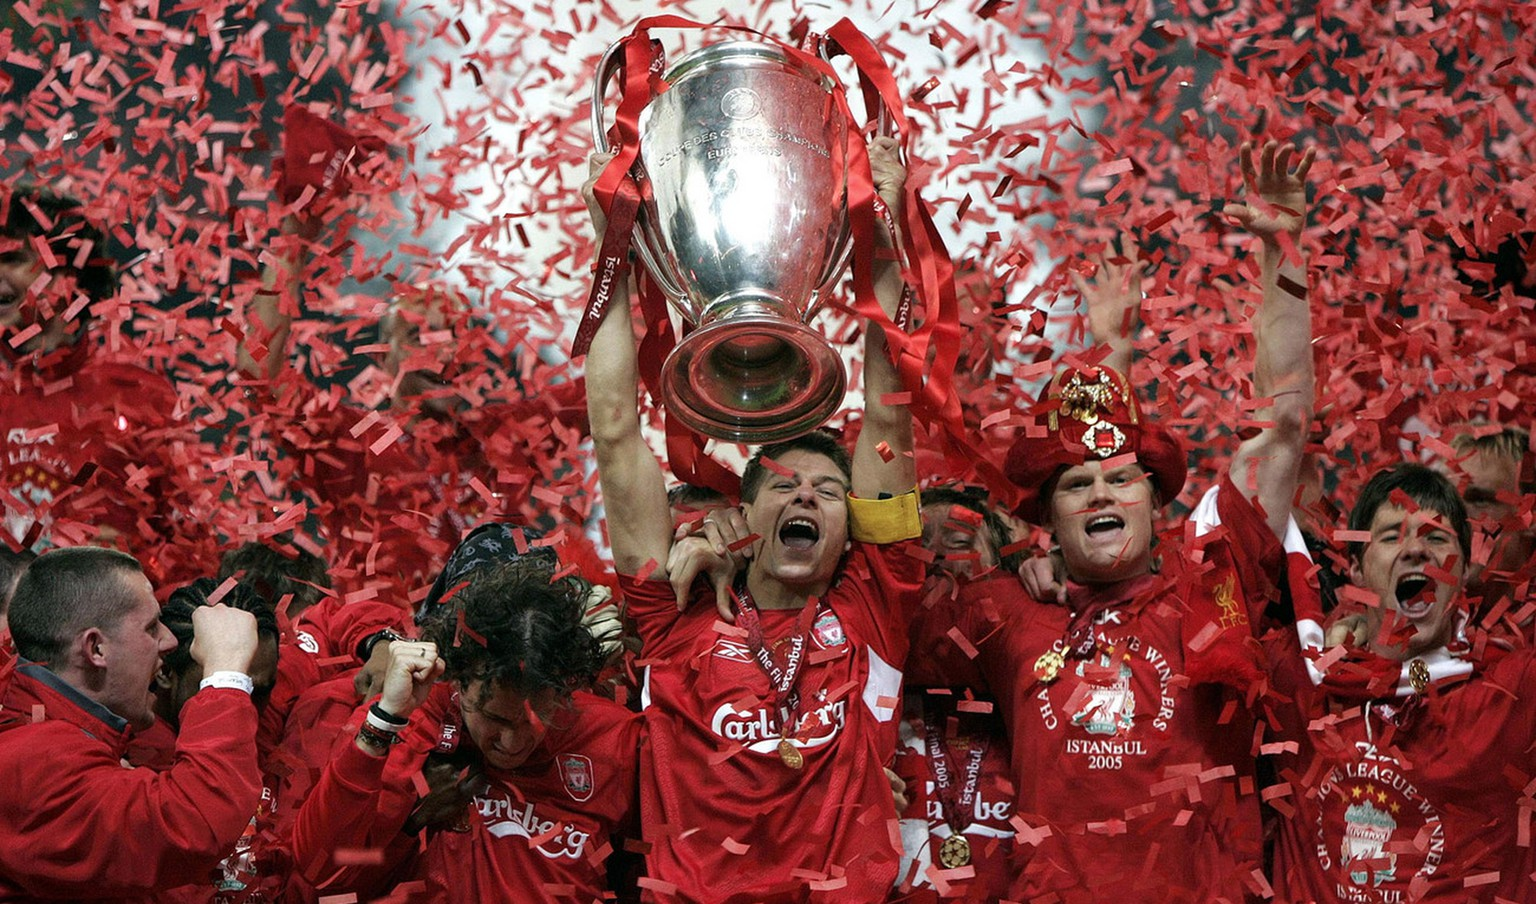 Liverpool's captain Steven Gerrard, center, lifts the Champions League trophy at The Ataturk Olympic Stadium, Istanbul, Turkey, Wednesday May 25, 2005.  Liverpool won the Champions League final beating AC Milan 3-2 on penalties after the teams were level at 3-3 after 120 minutes. (KEYSTONE/AP Photo/PA, Phil Noble) === UNITED KINGDOM OUT   ===